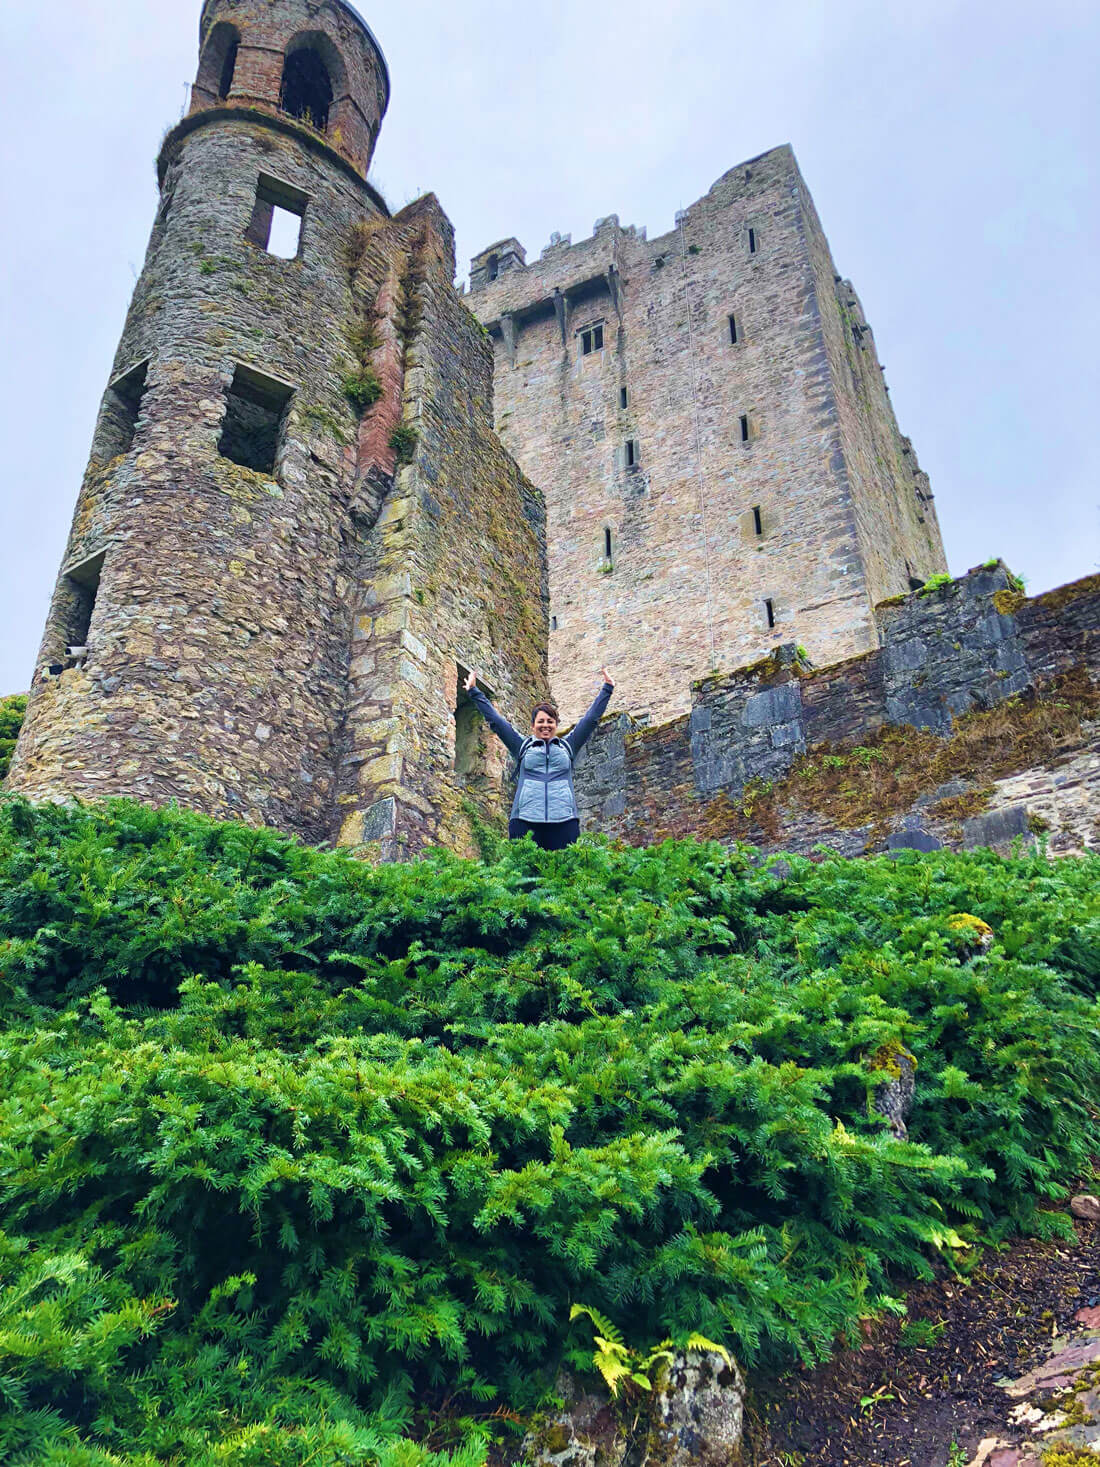 Visiting the Blarney Castle in Ireland